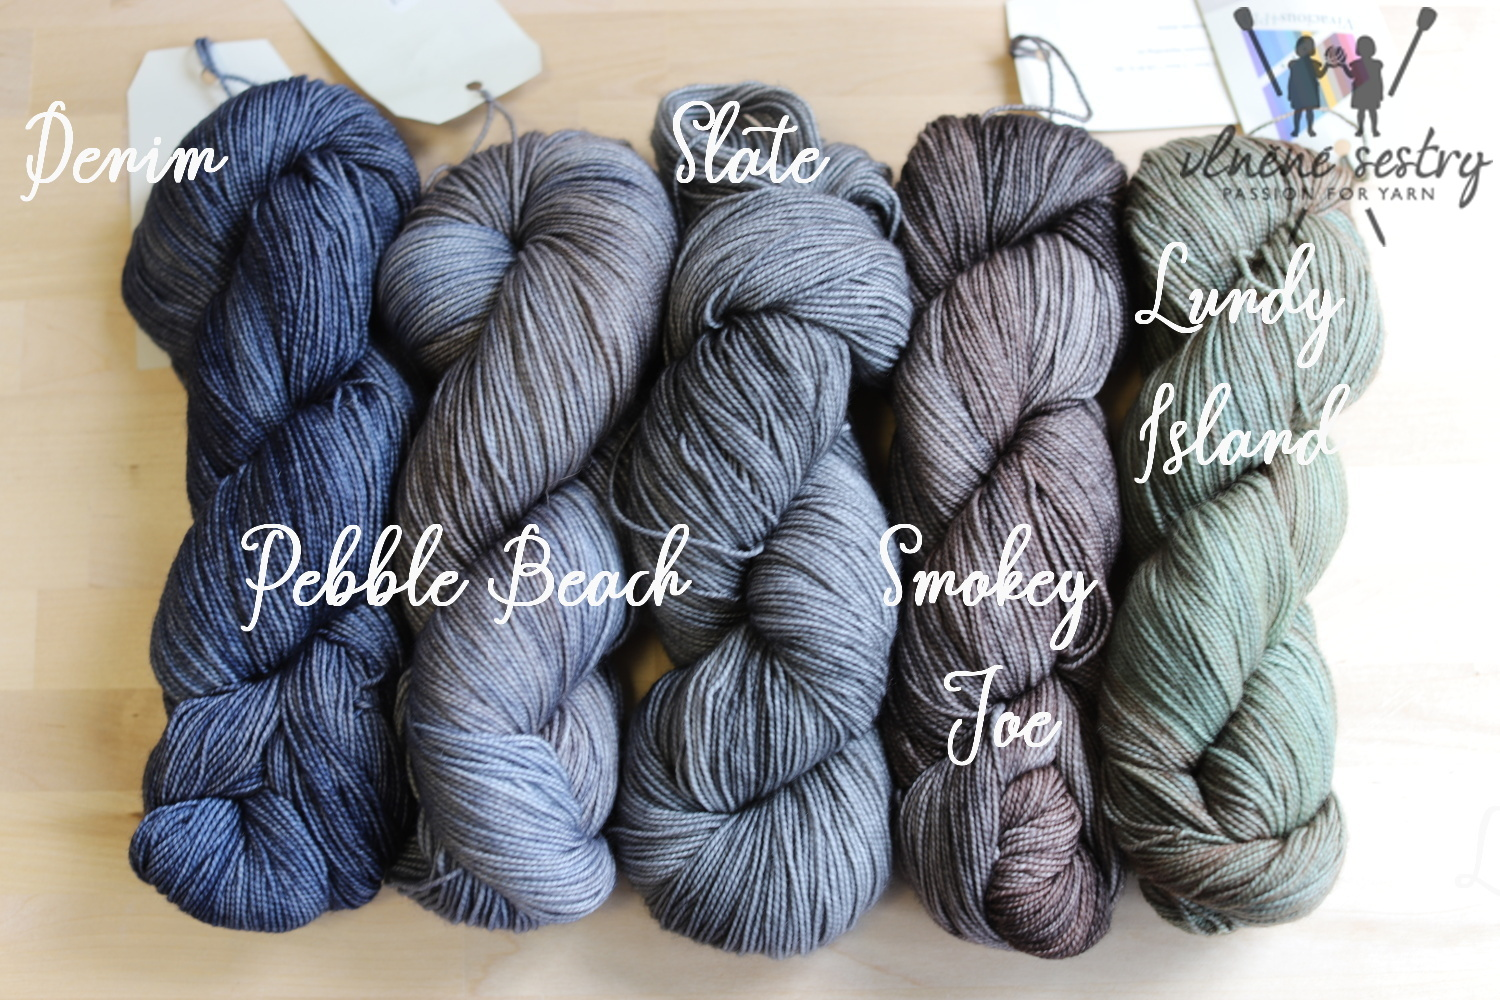 Vivacious 4 Ply - Pebble Beach